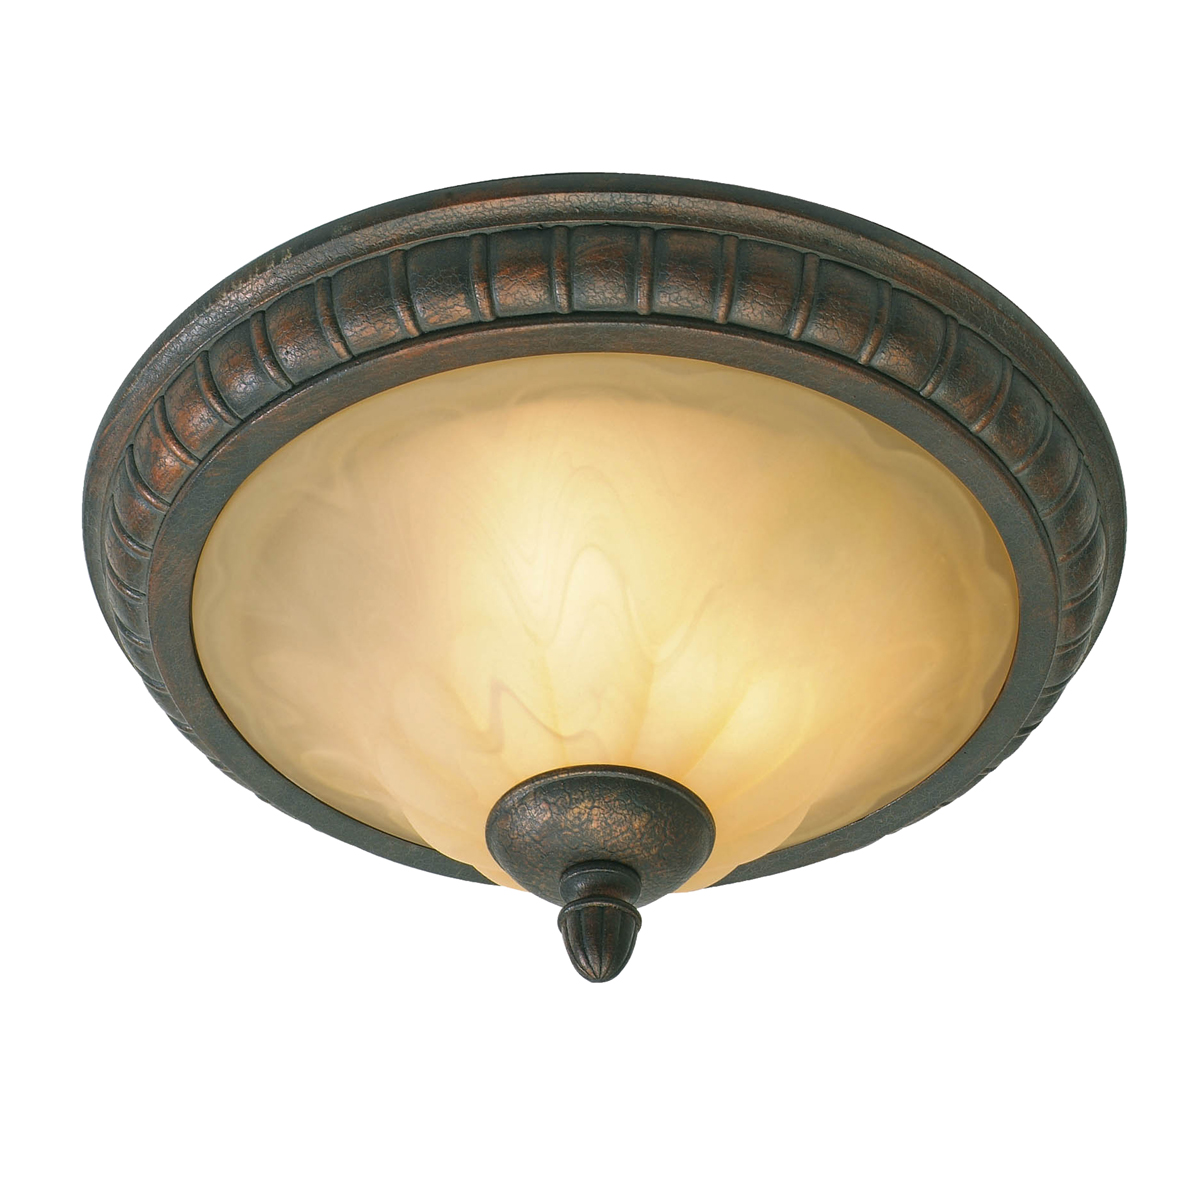 Golden Lighting (GLDN-7116-17) Mayfair Flush Mount shown in Leather Crackle with Crème Brulee Glass